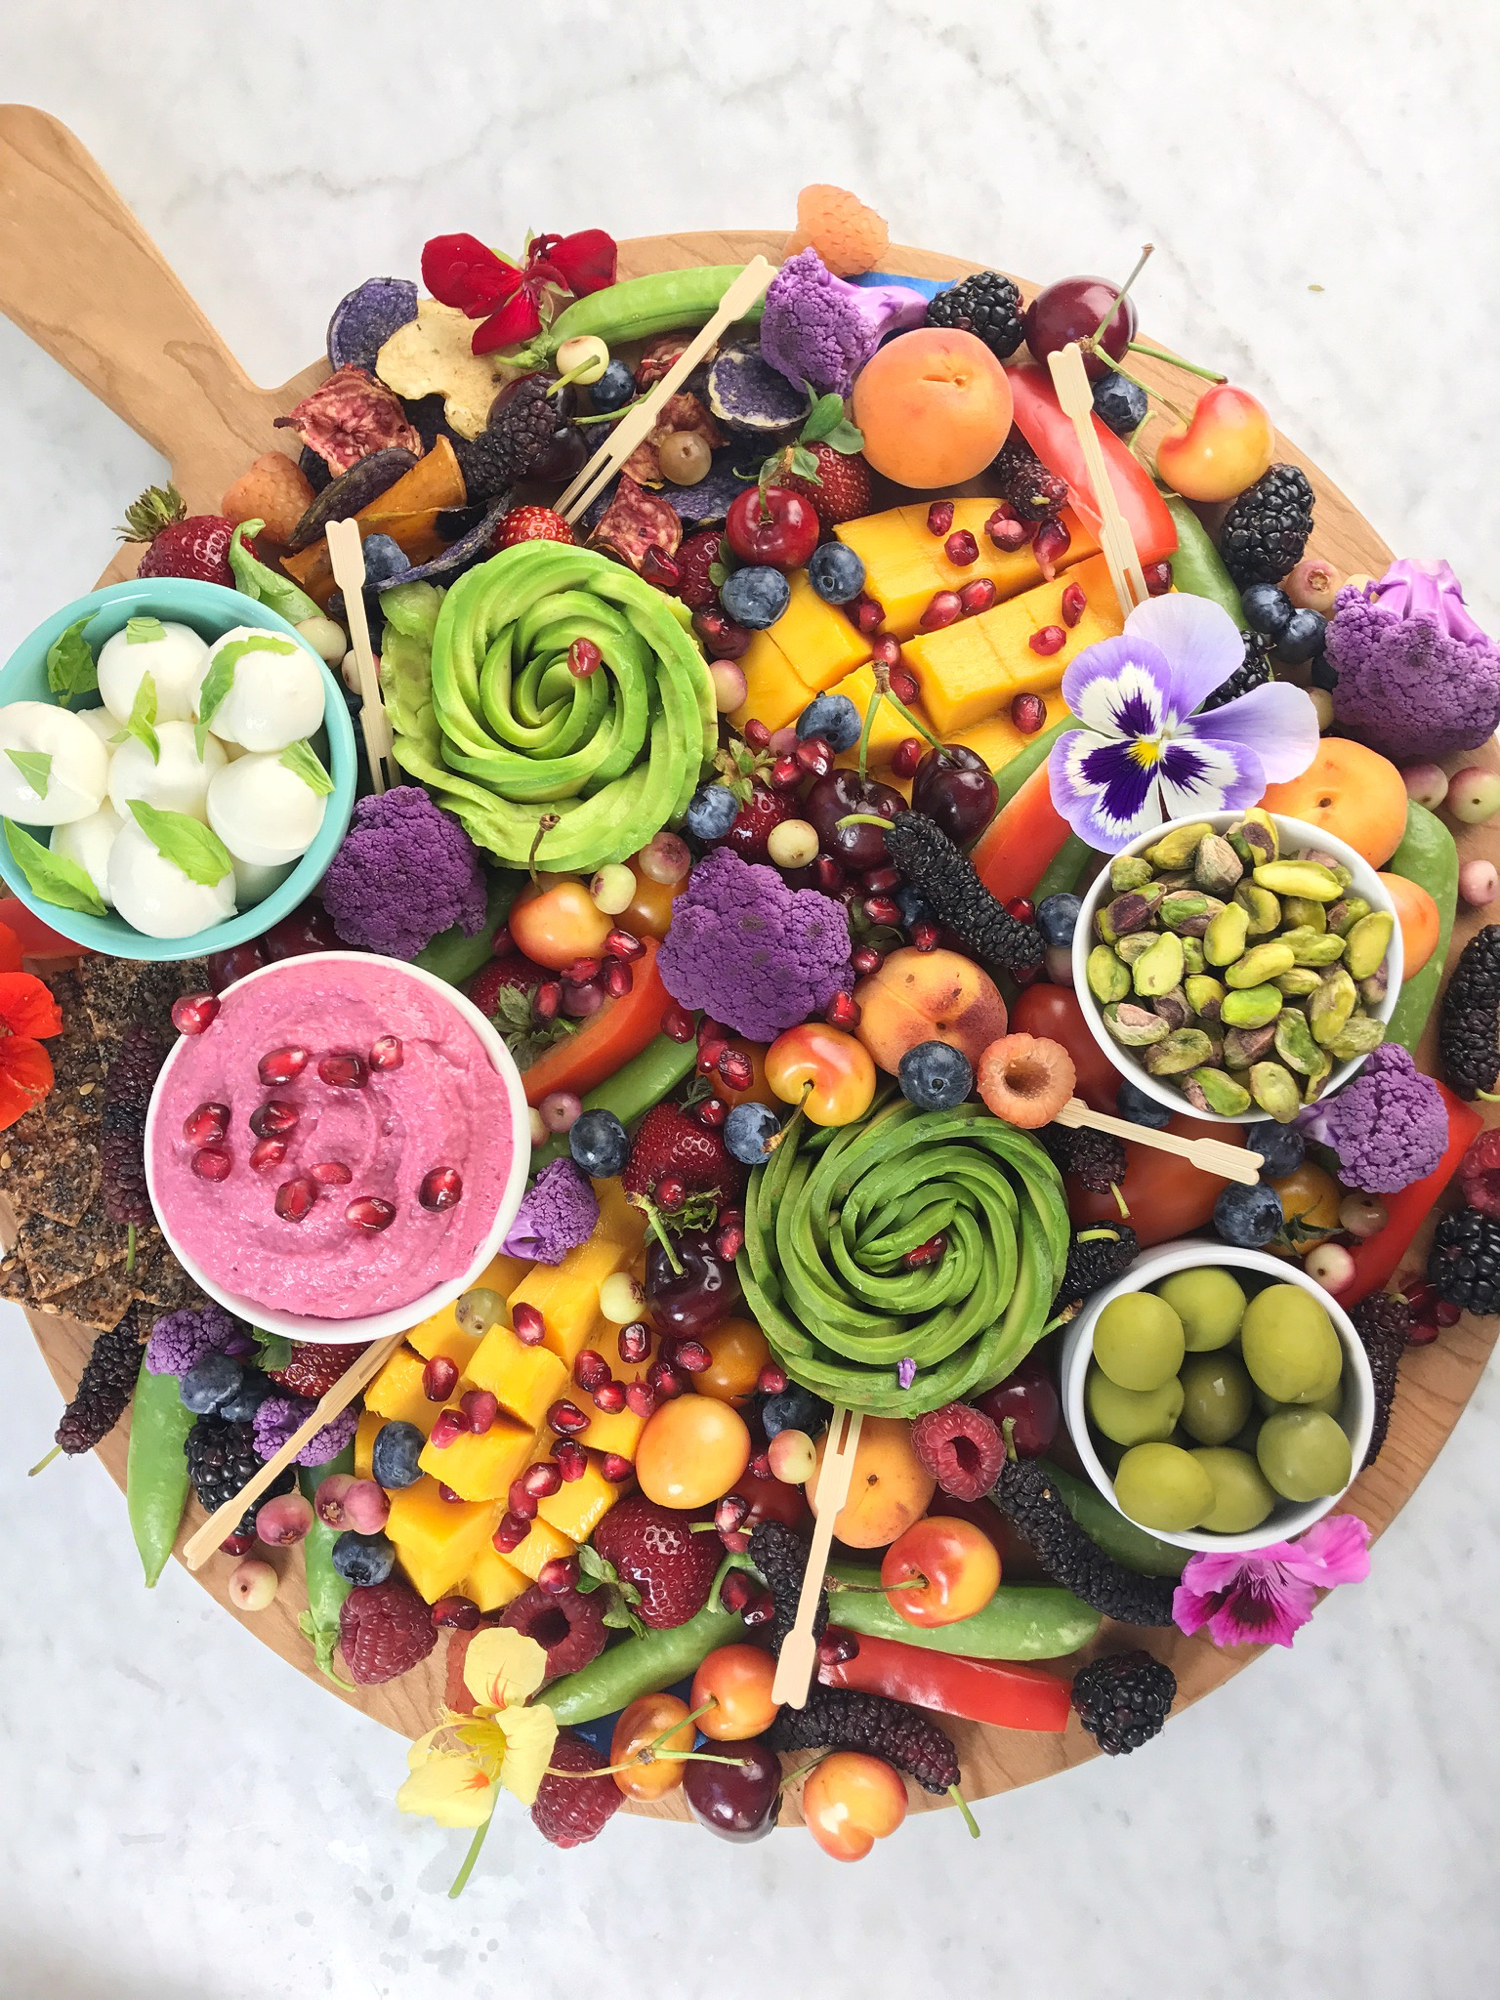 Ultimate Snack Platters from Weelicious.com